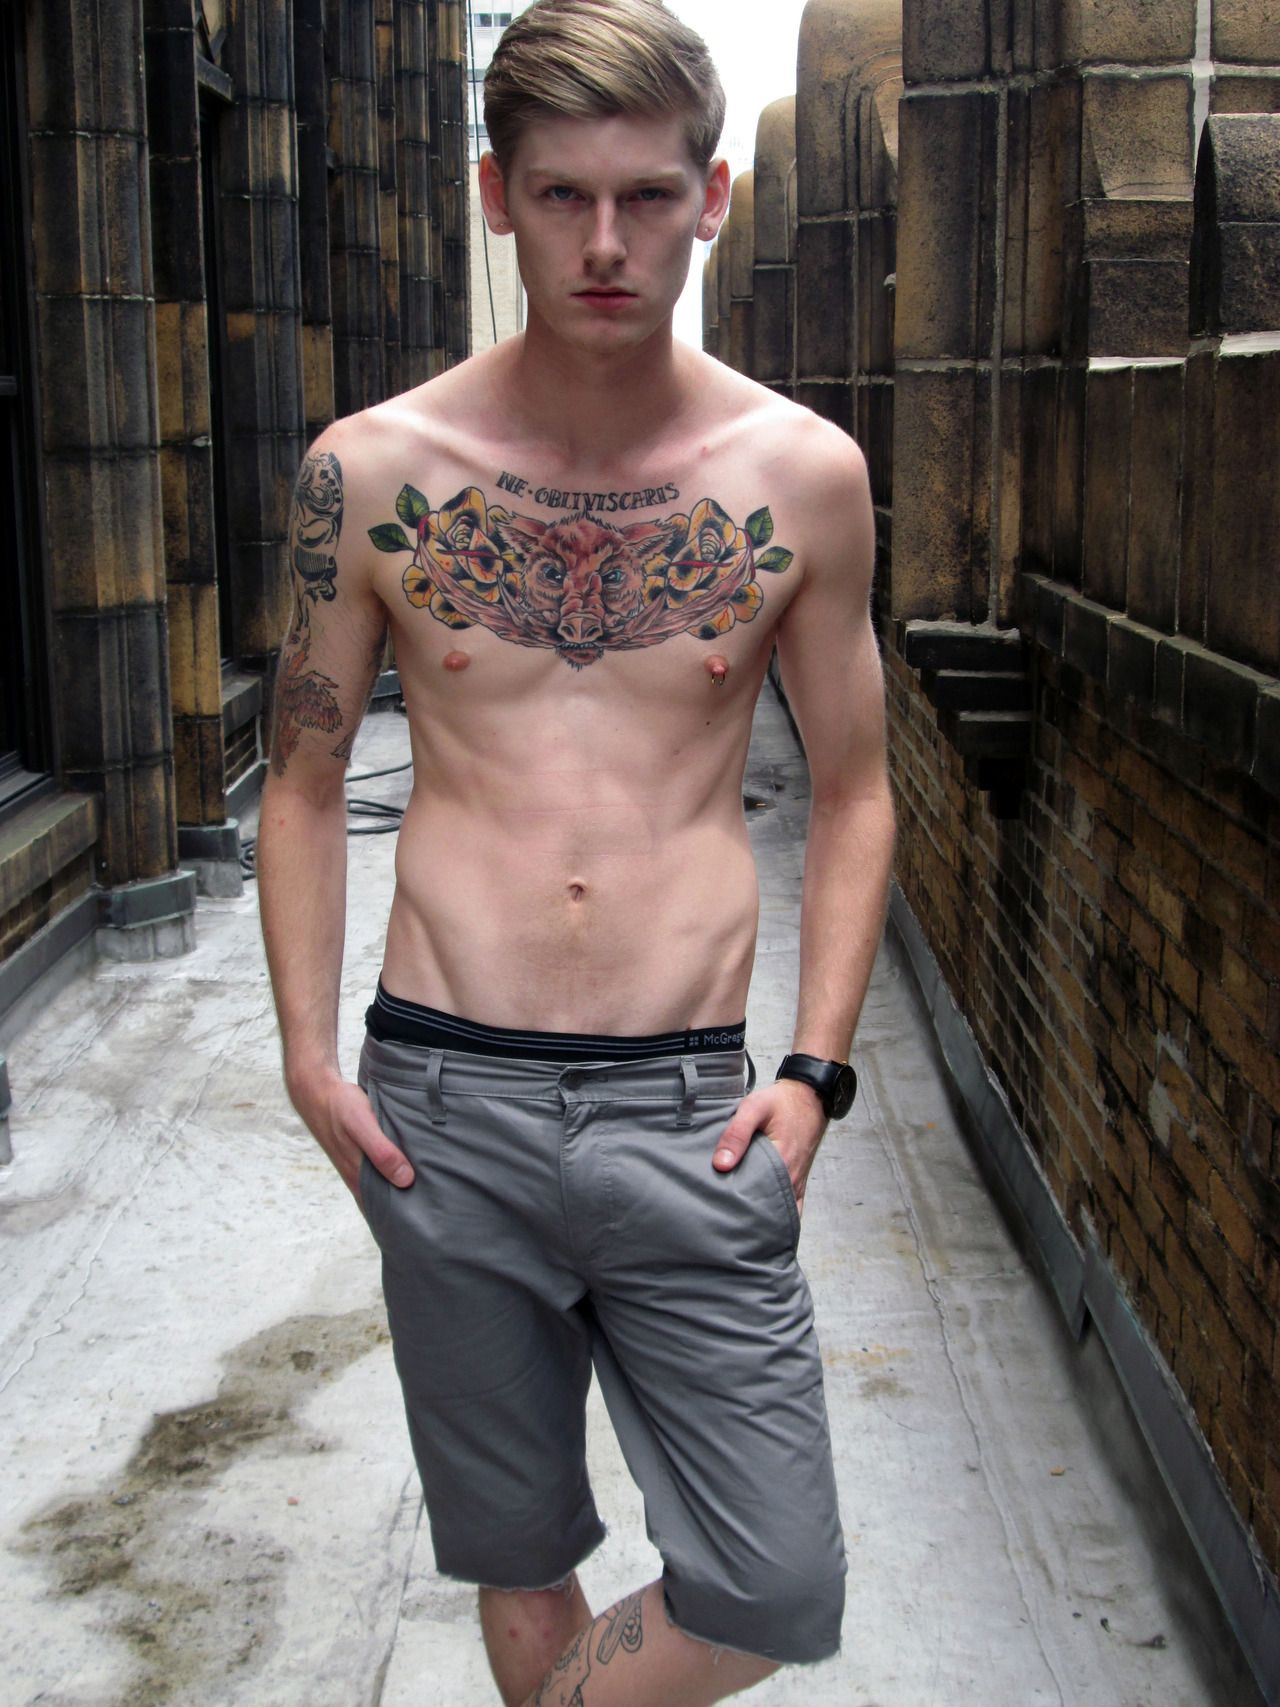 Skinny and cute tattooed boy hot guys upset me | males and